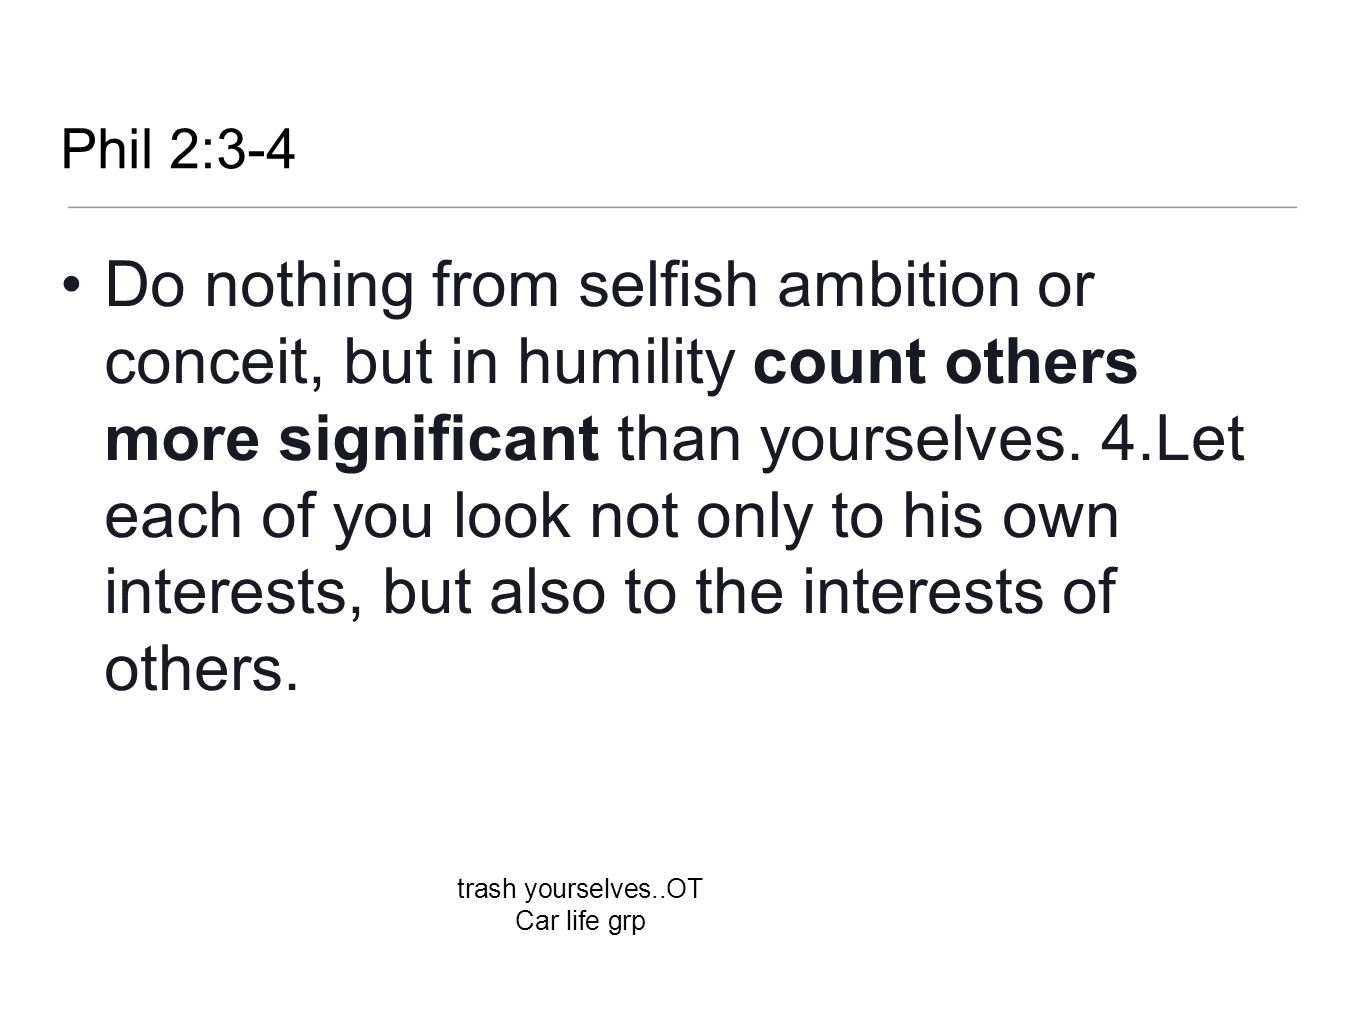 Phil 2:3-4 Do nothing from selfish ambition or conceit, but in humility count others more significant than yourselves. 4.Let each of you look not only